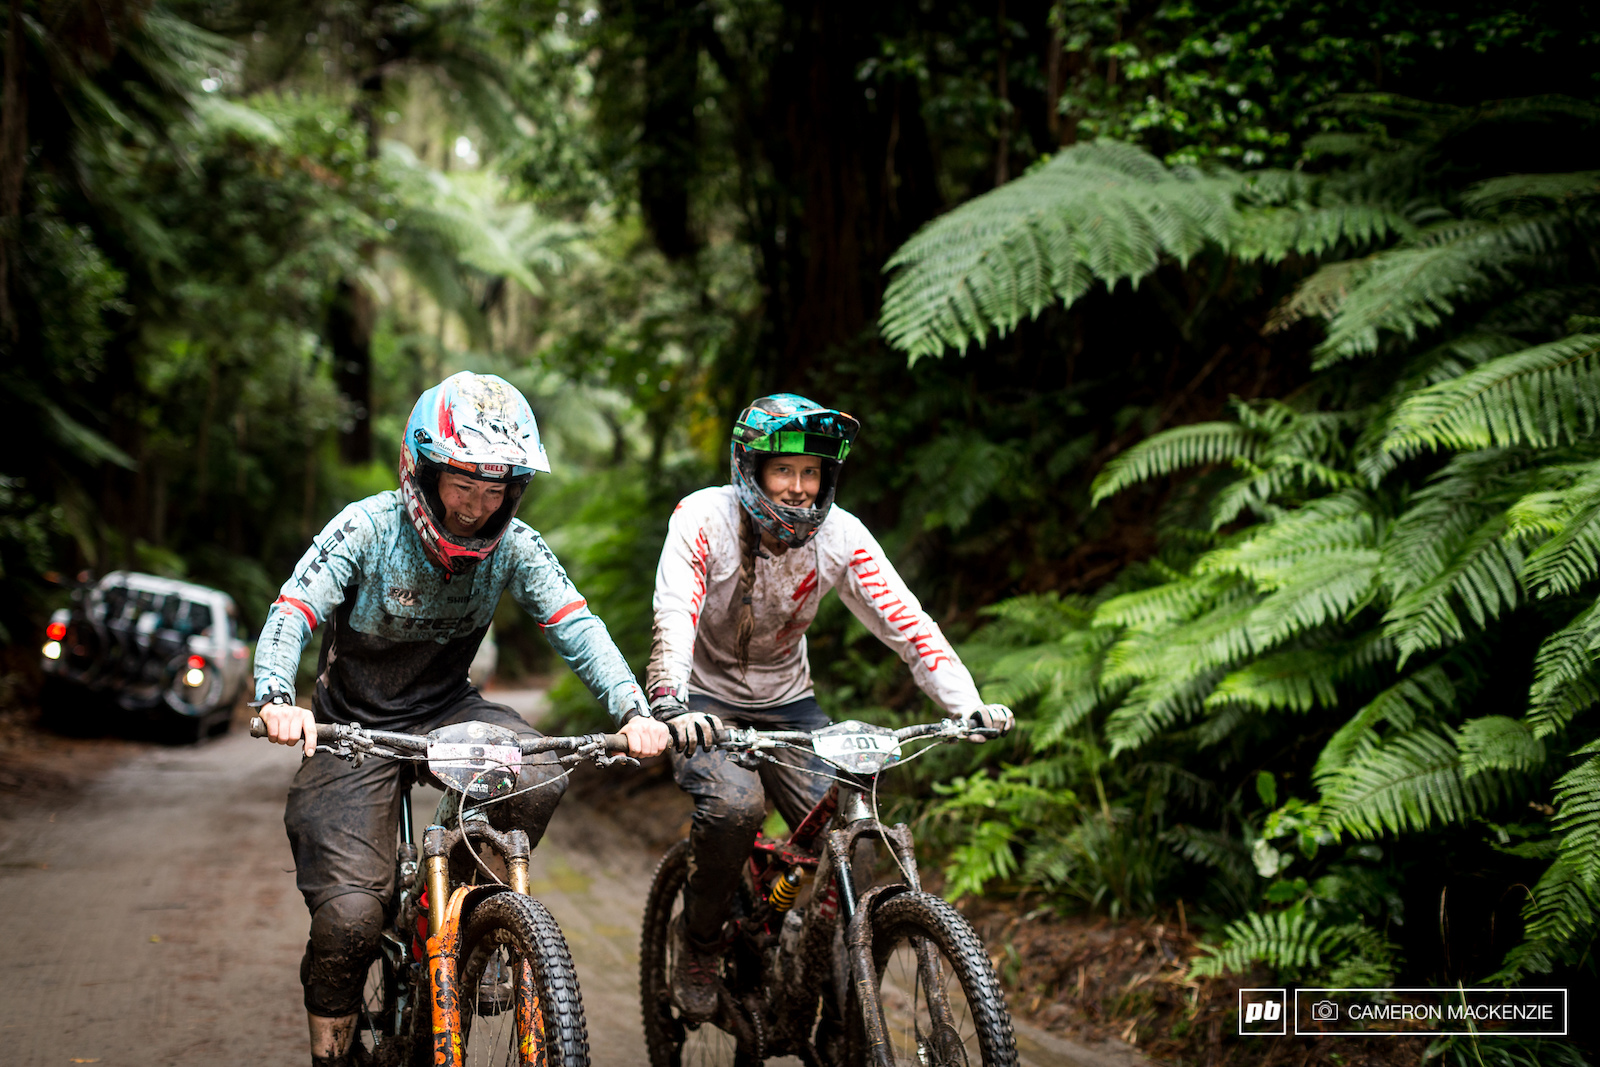 Casey Brown and Miranda Miller weren t loving the loose conditions today but enjoyed racing together and yarning on the ups.